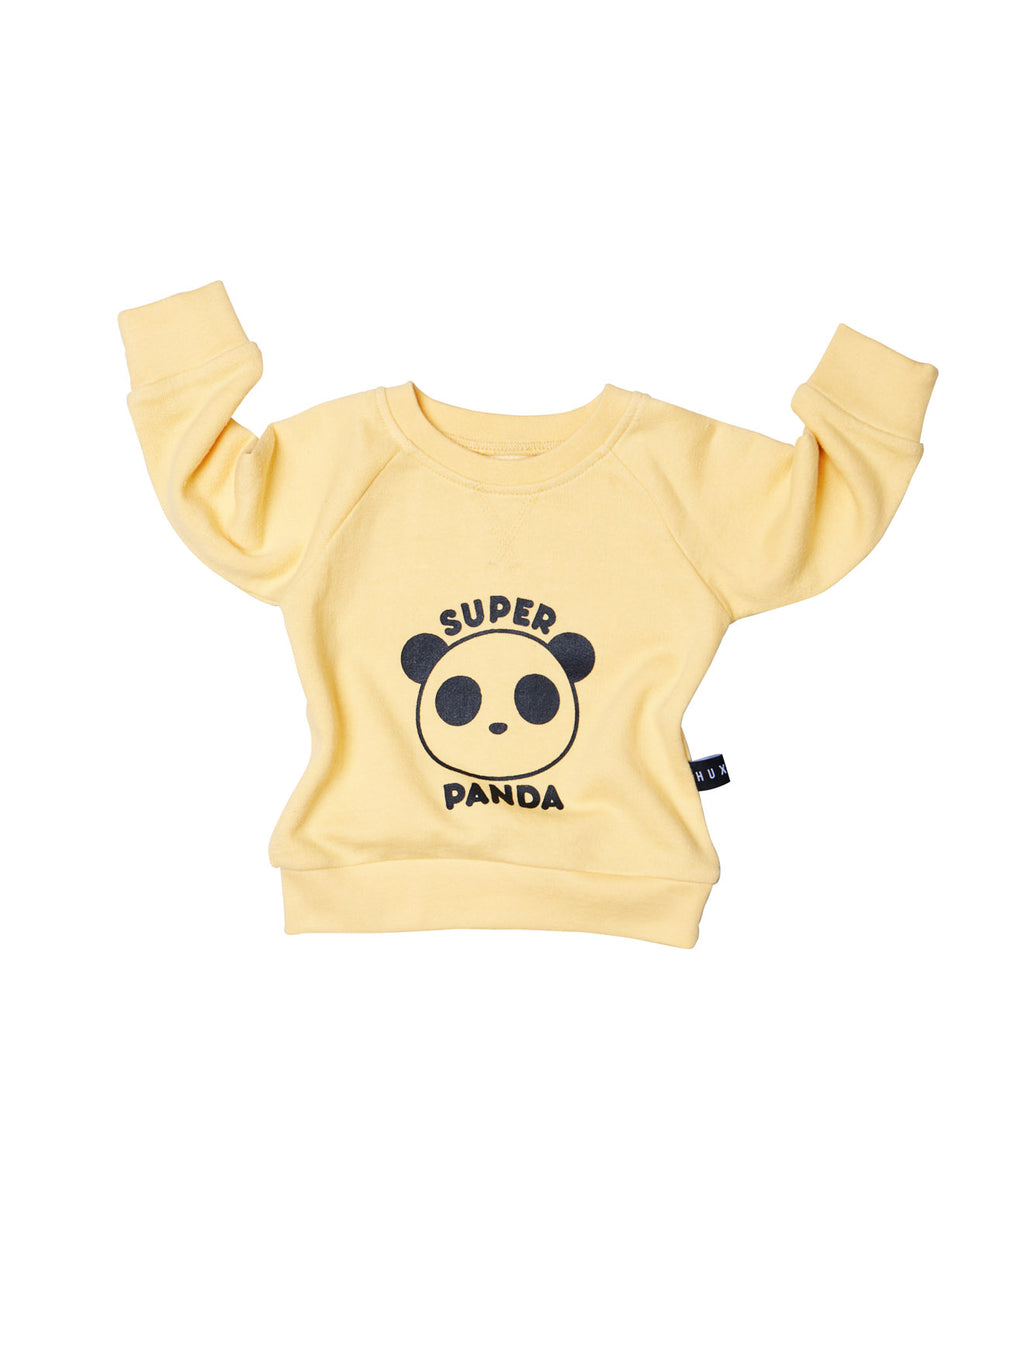 Super Panda Sweatshirt